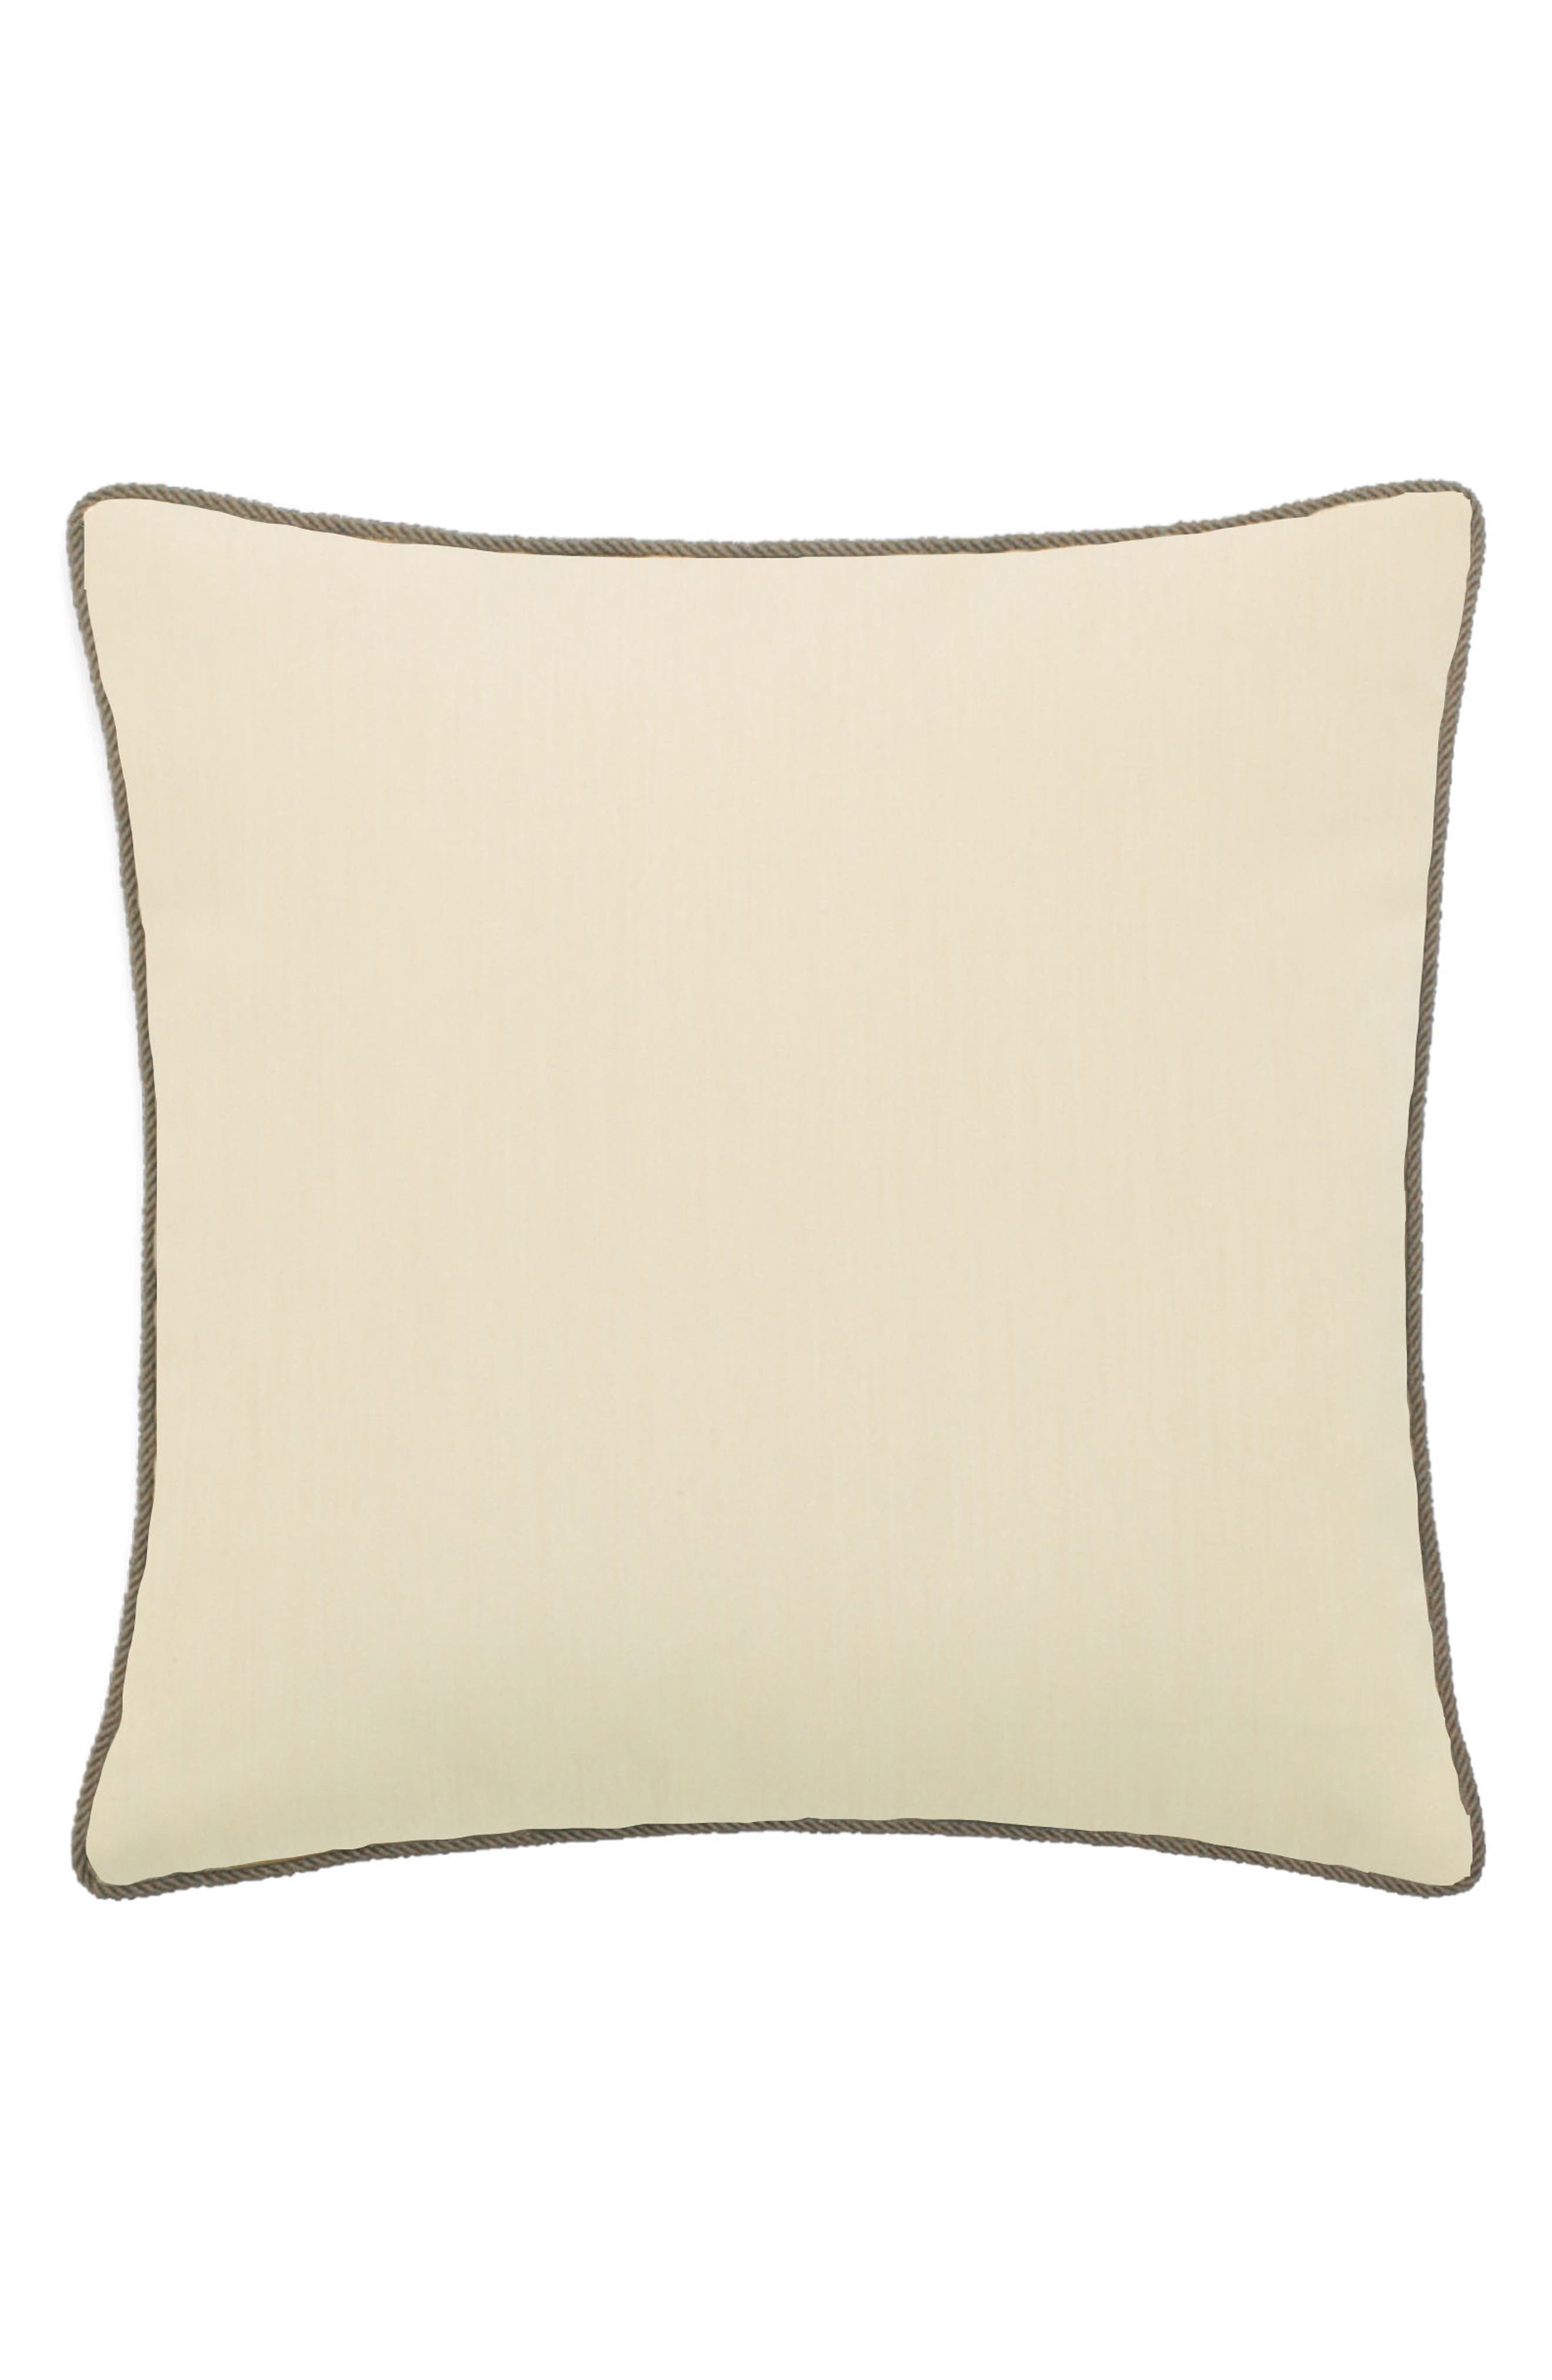 Jeweled Sedona Sun Indoor/Outdoor Accent Pillow,                             Alternate thumbnail 2, color,                             Gold/ Grey